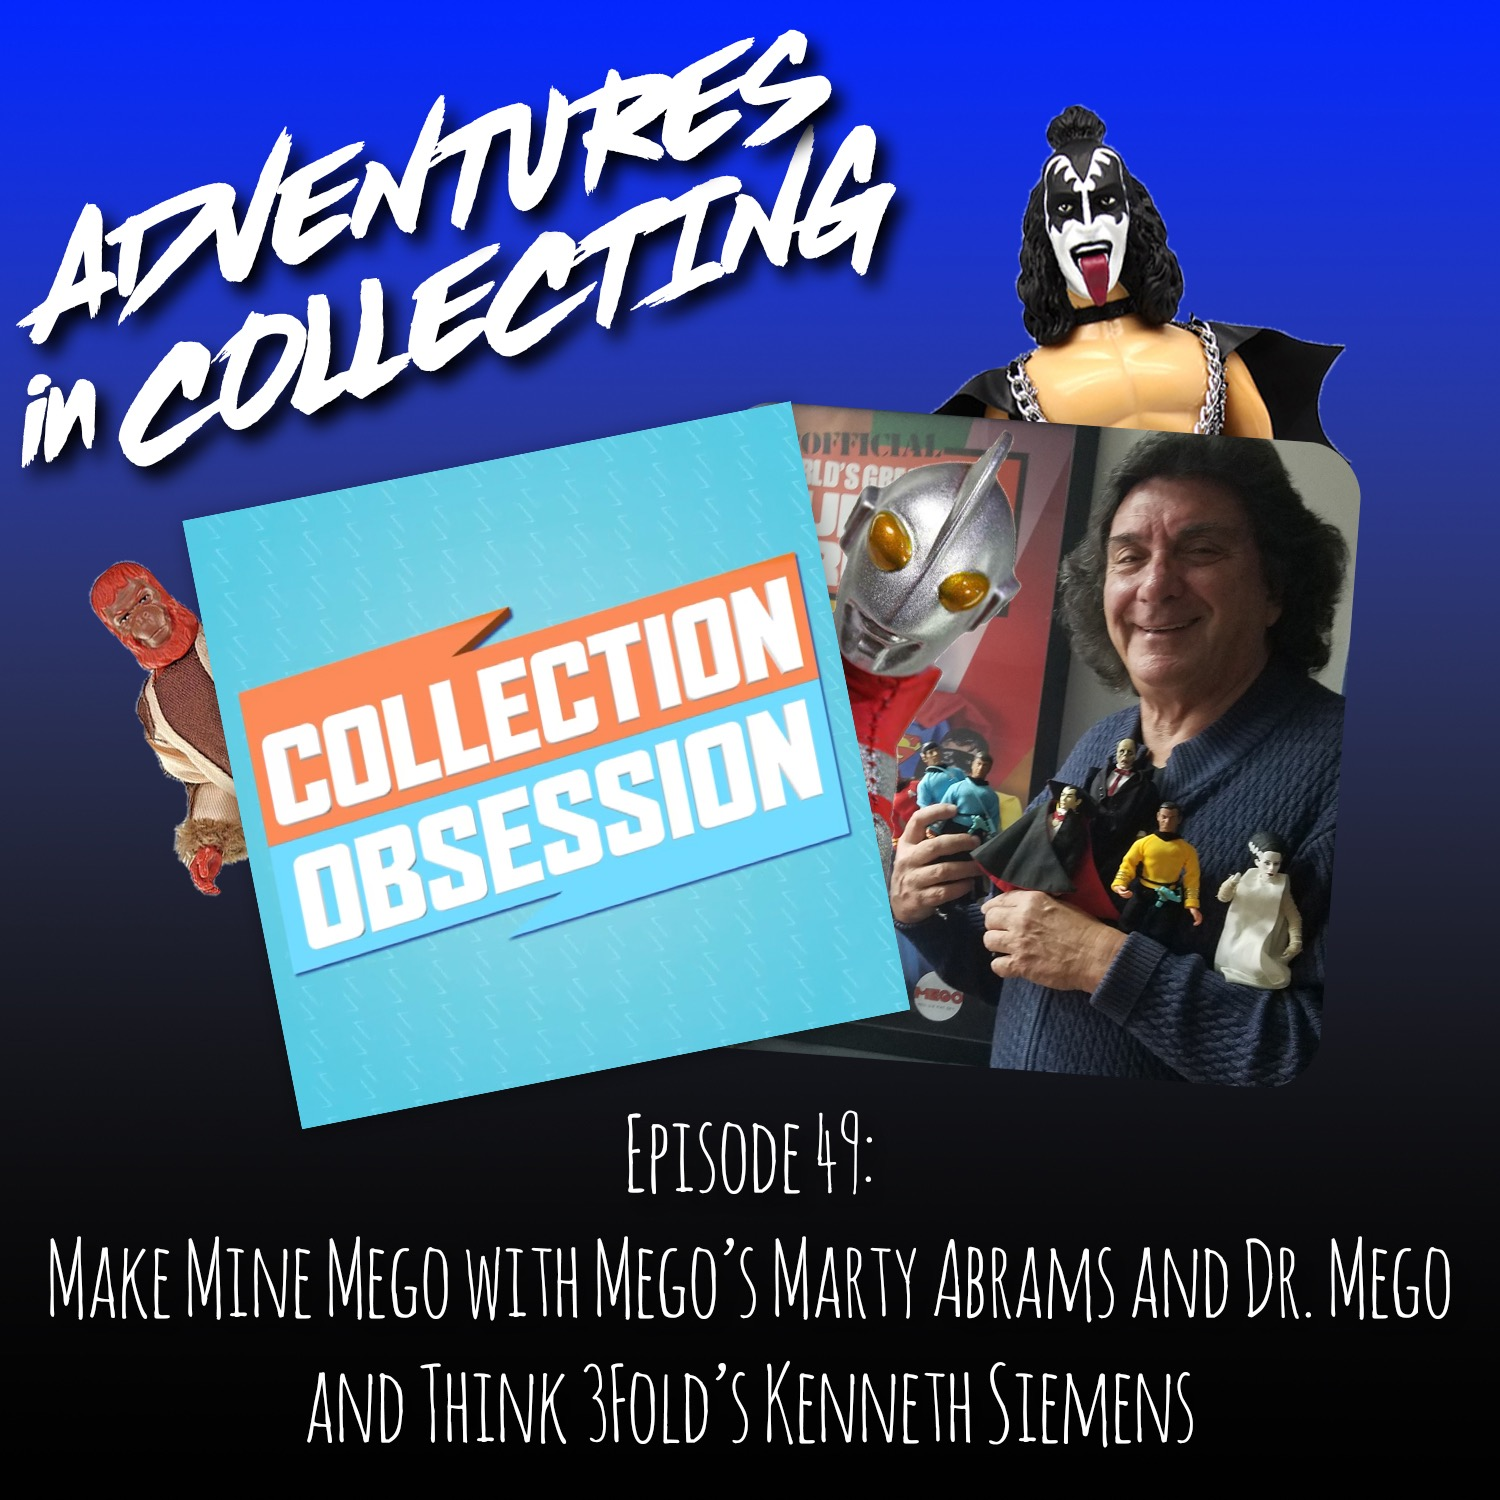 Make Mine Mego with Mego's Marty Abrams and Dr. Mego and Think 3Fold's Kenneth Siemens – Adventures in Collecting